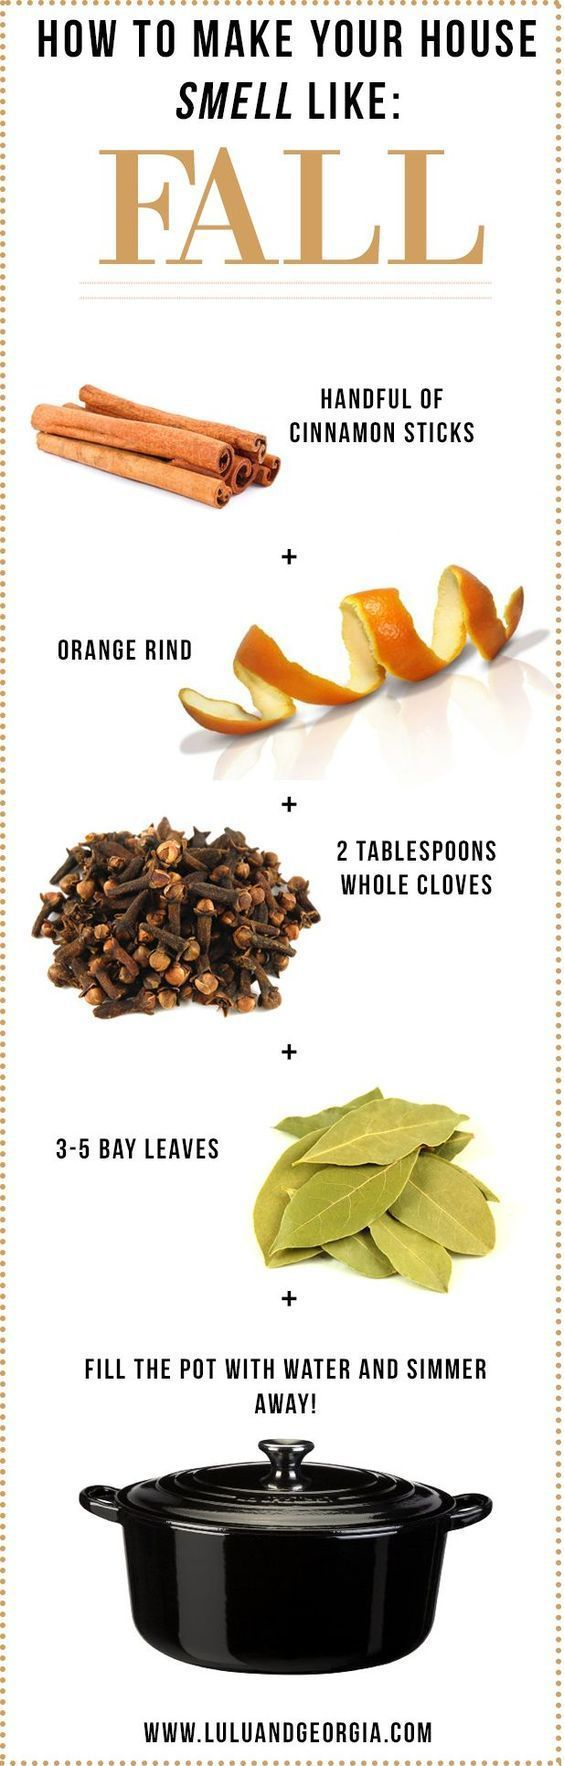 Make your home smell warm and cozy